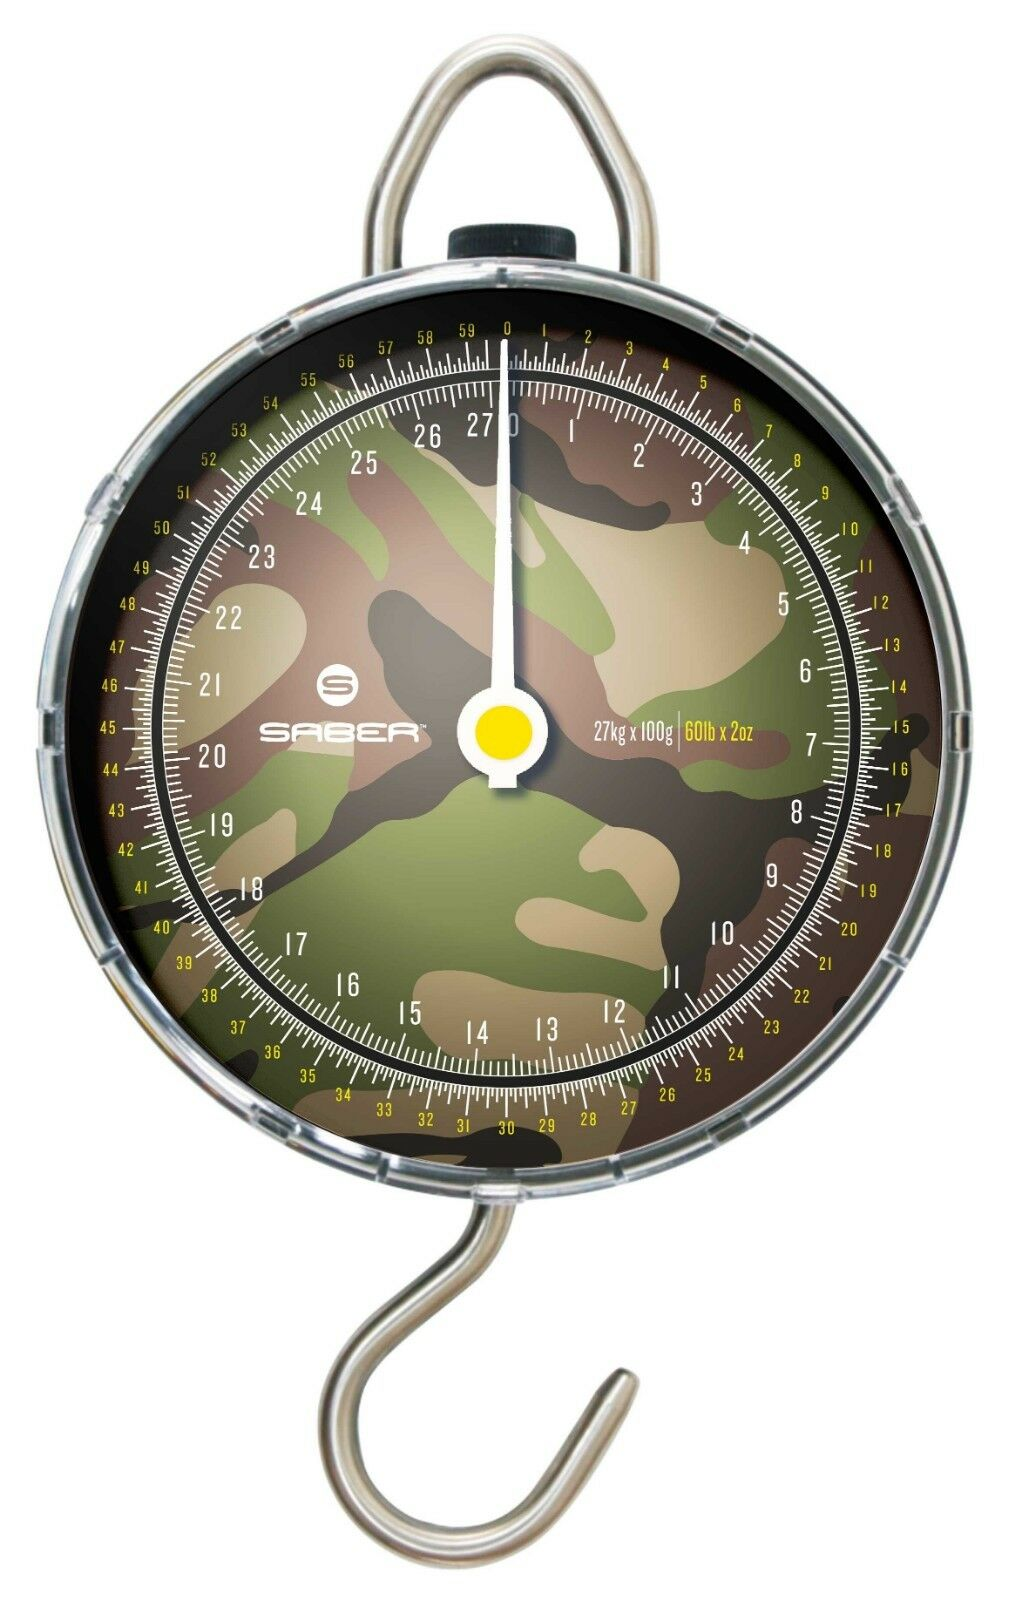 Saber DPM 60lb Dial Scales NEW Carp Fishing Weighing Scales